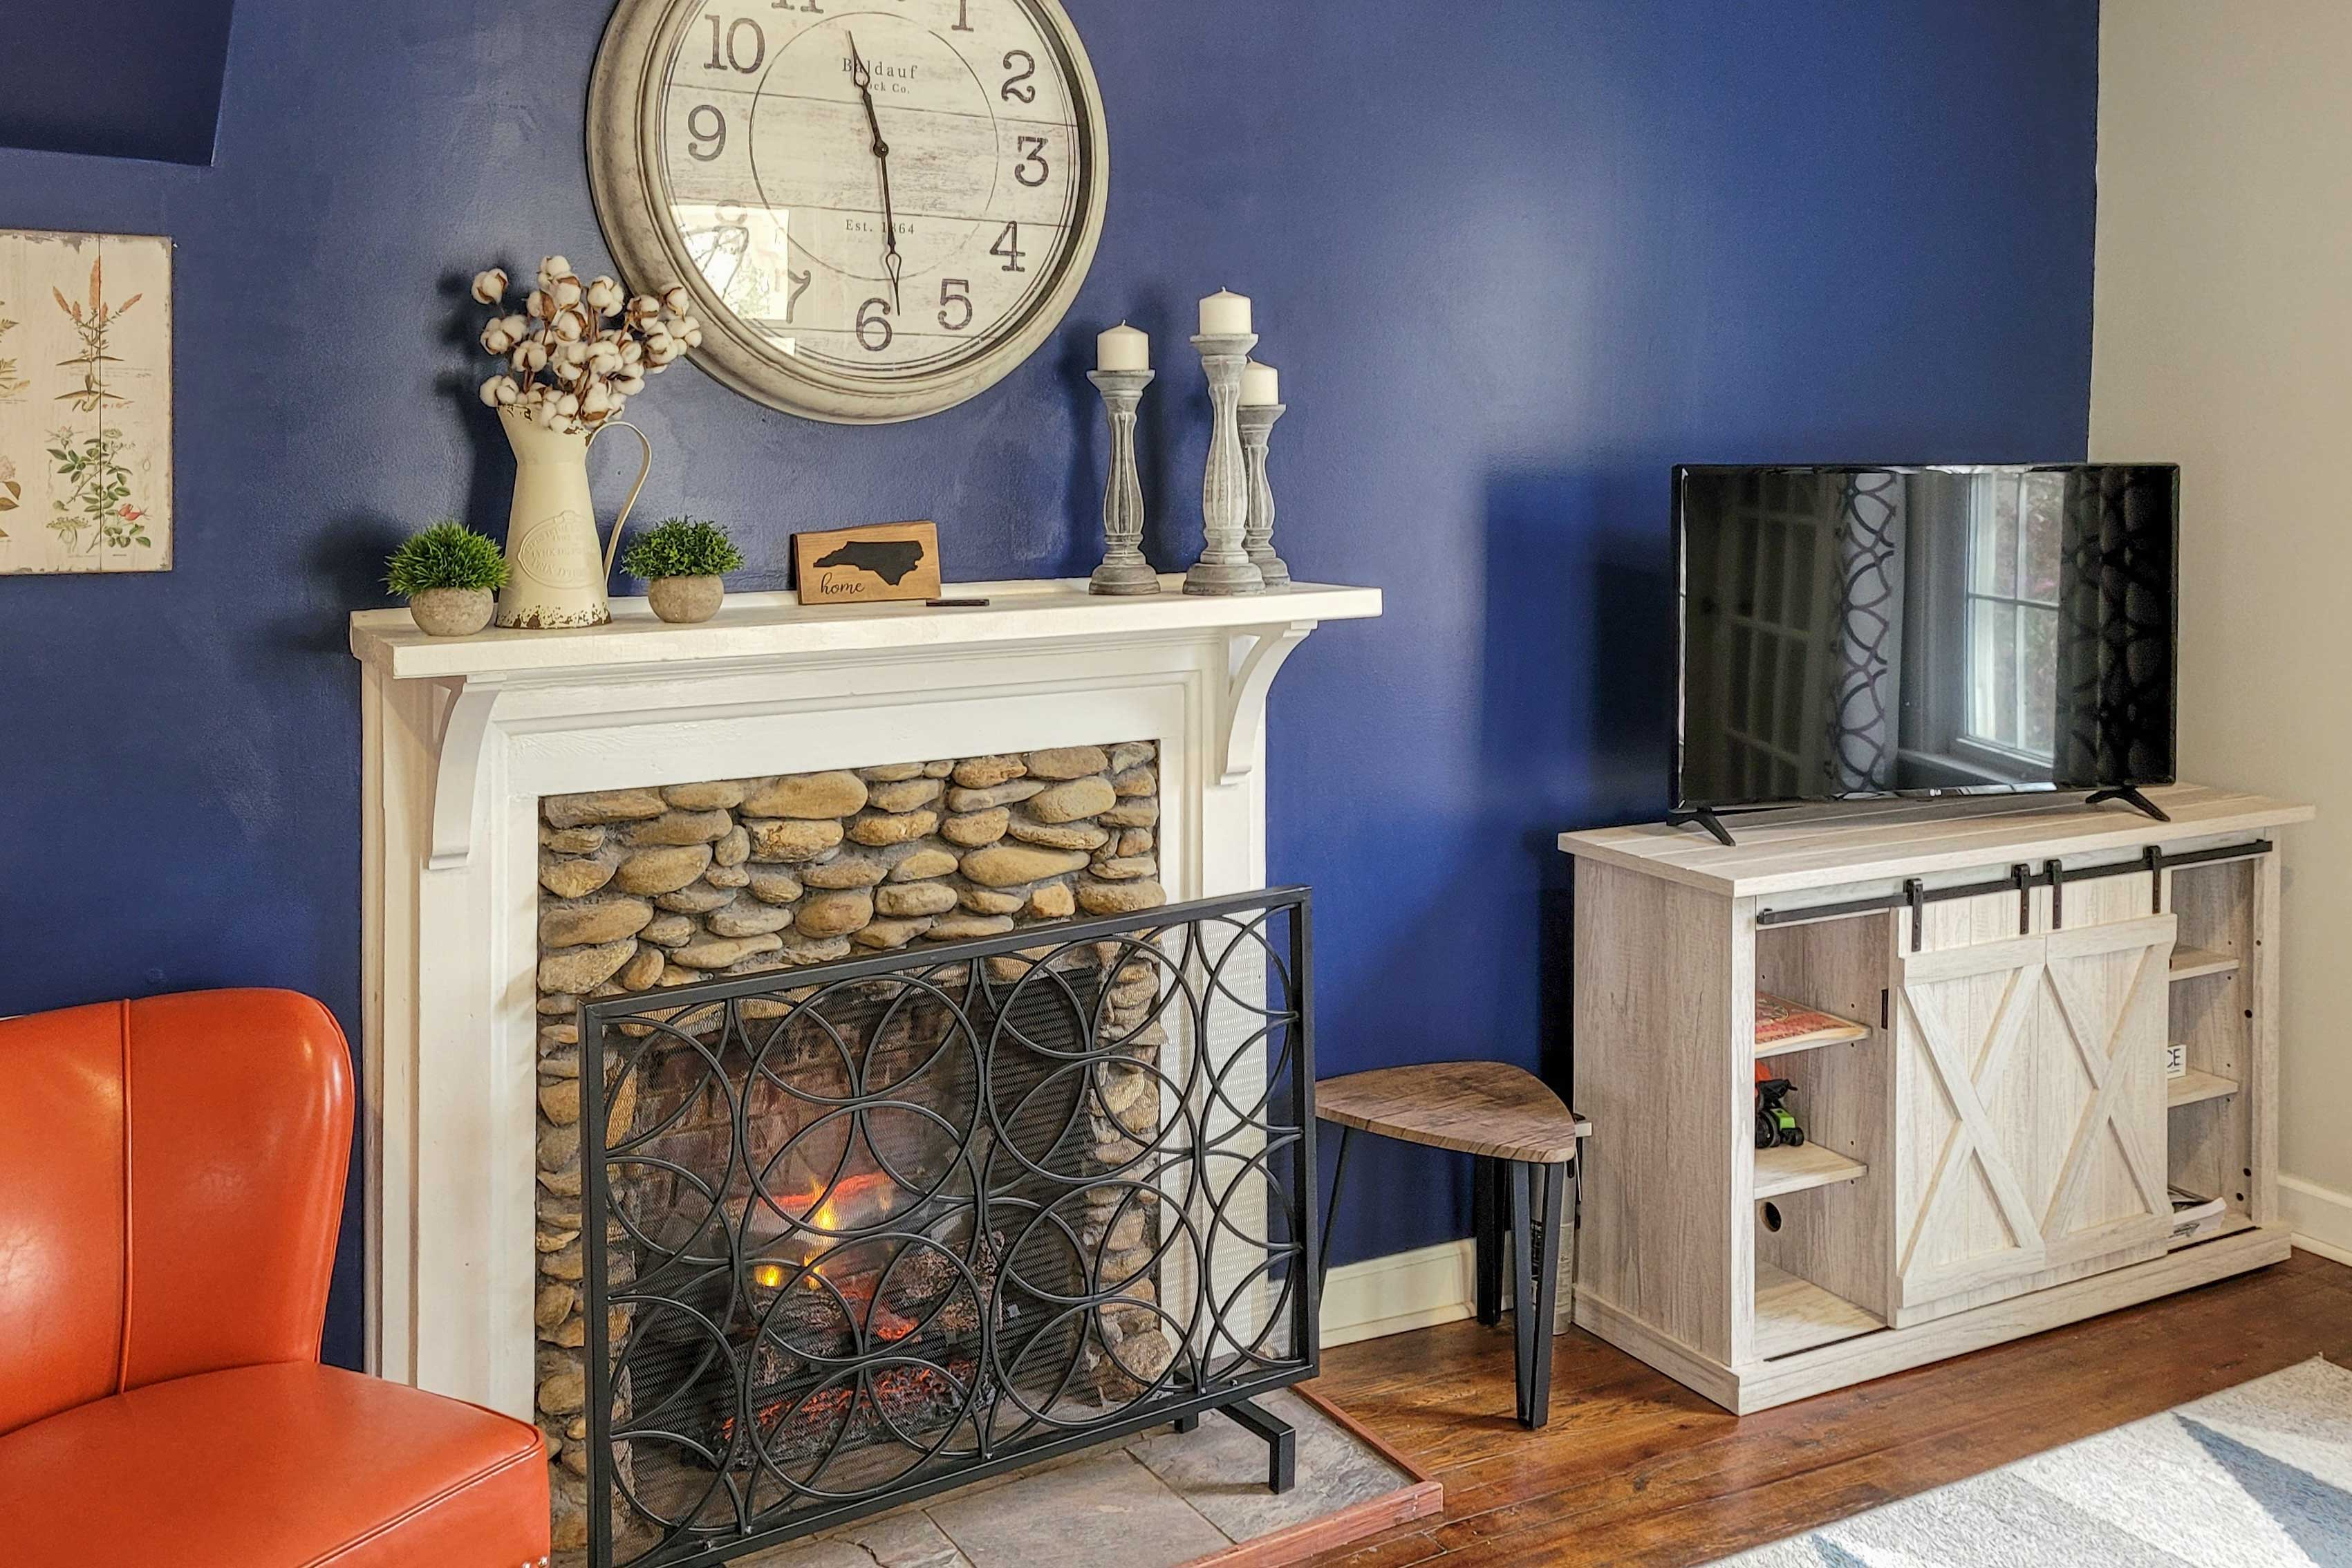 The home was just updated with a new fireplace.